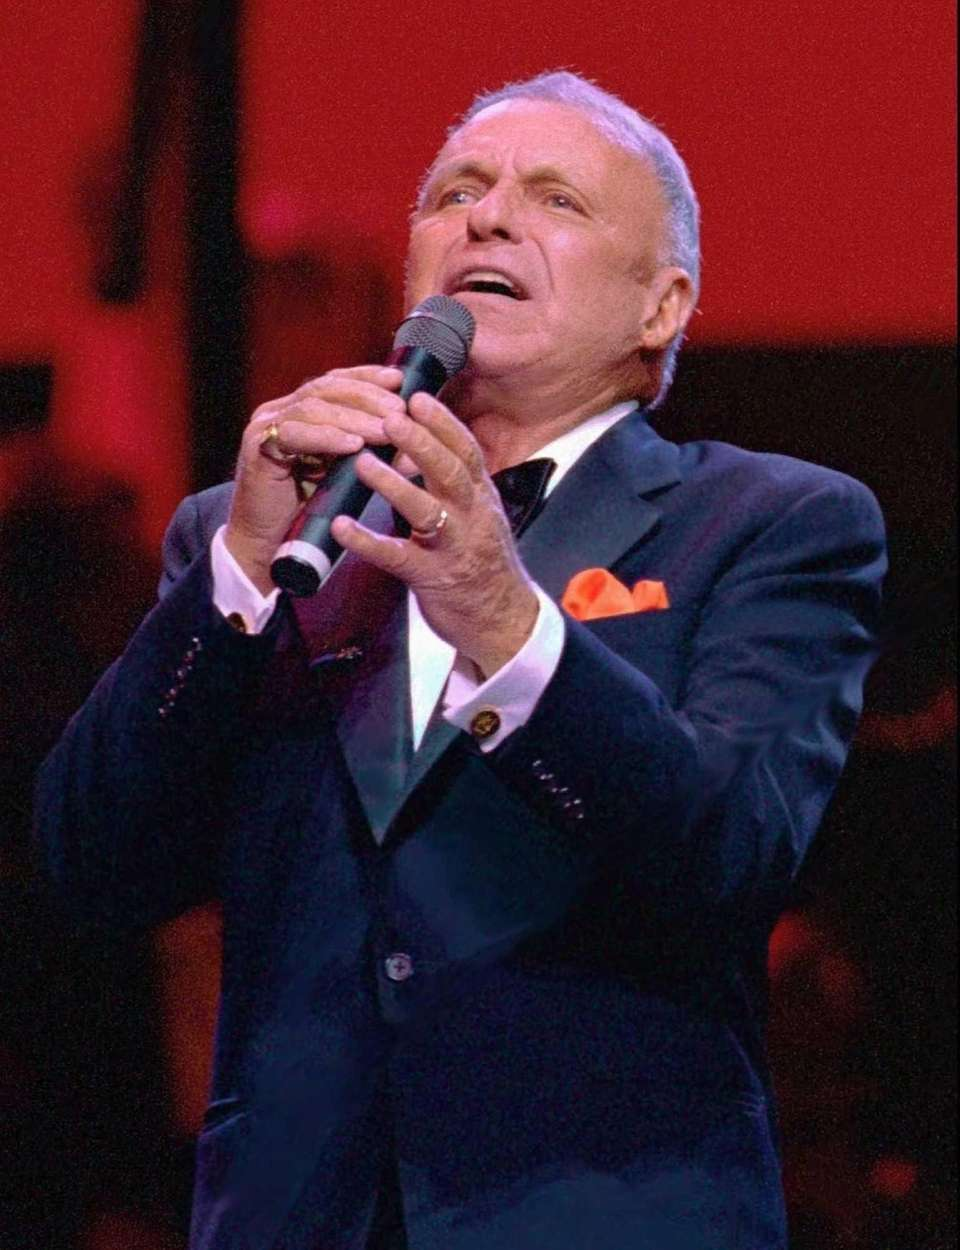 Frank Sinatra performs at Radio City Music Hall